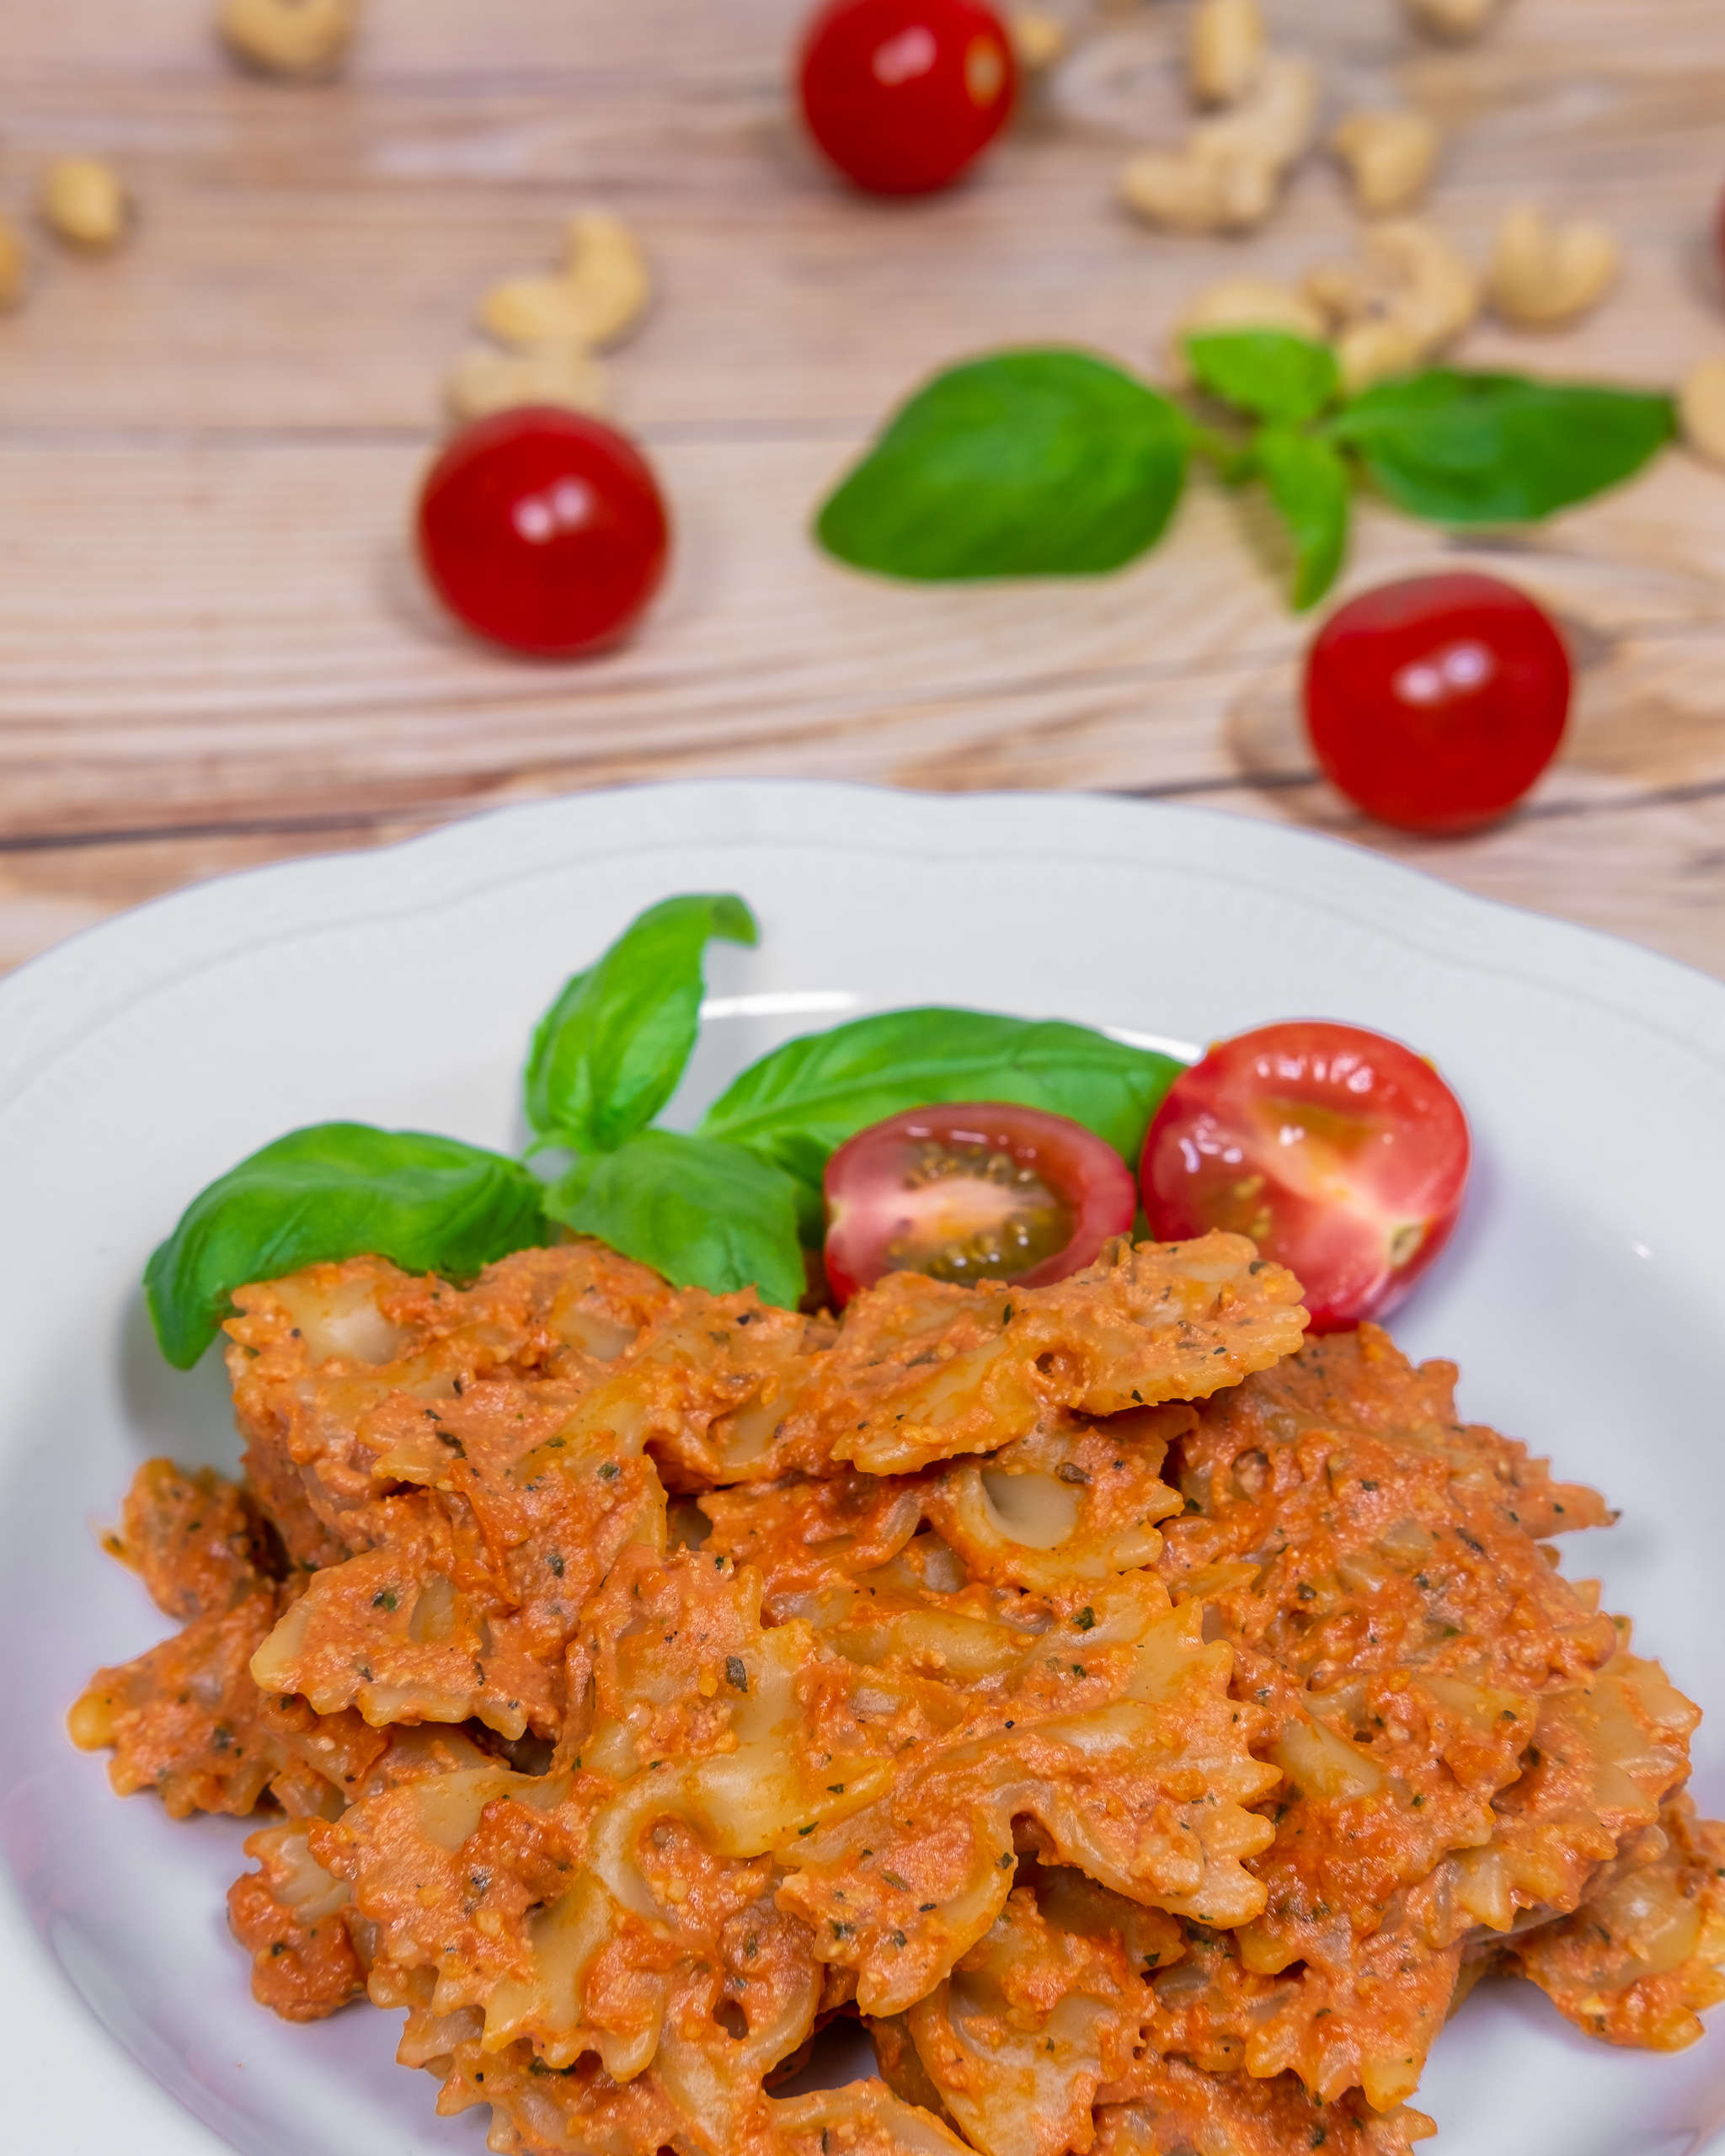 Easy to make tomato sauce pasta